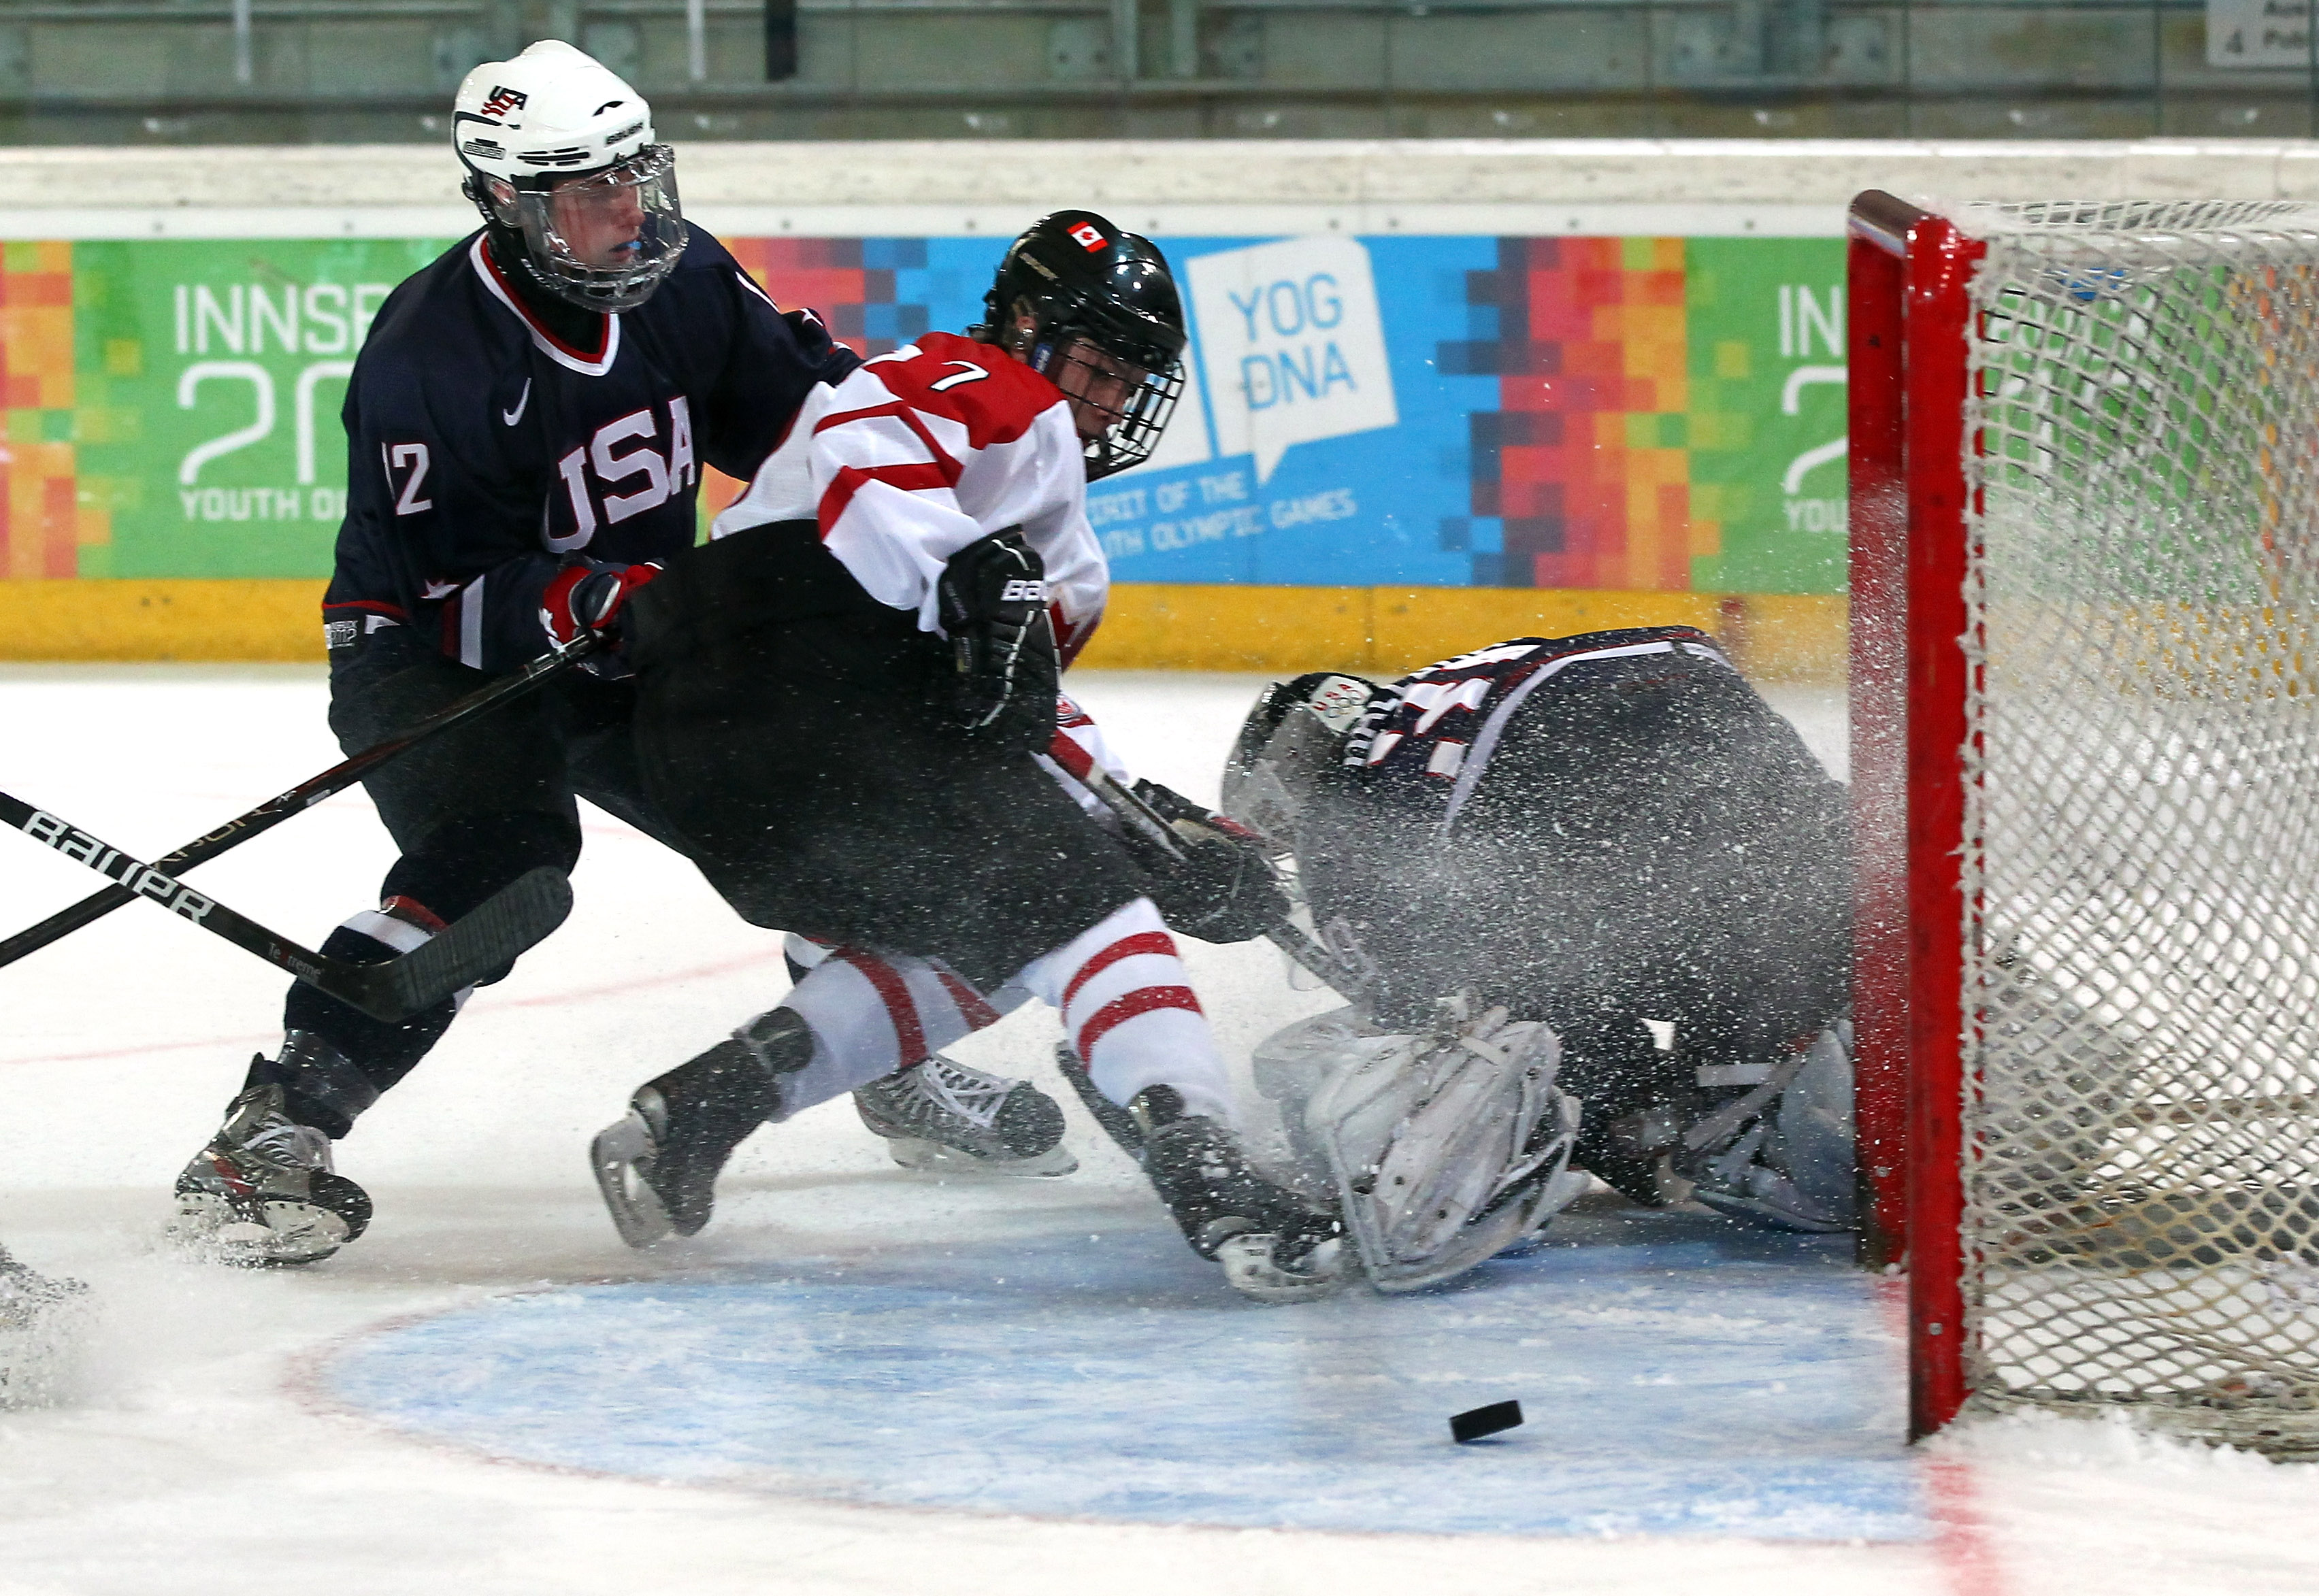 Jack Eichel (12) in the 2012 Youth Olympic Games. (Getty Images)